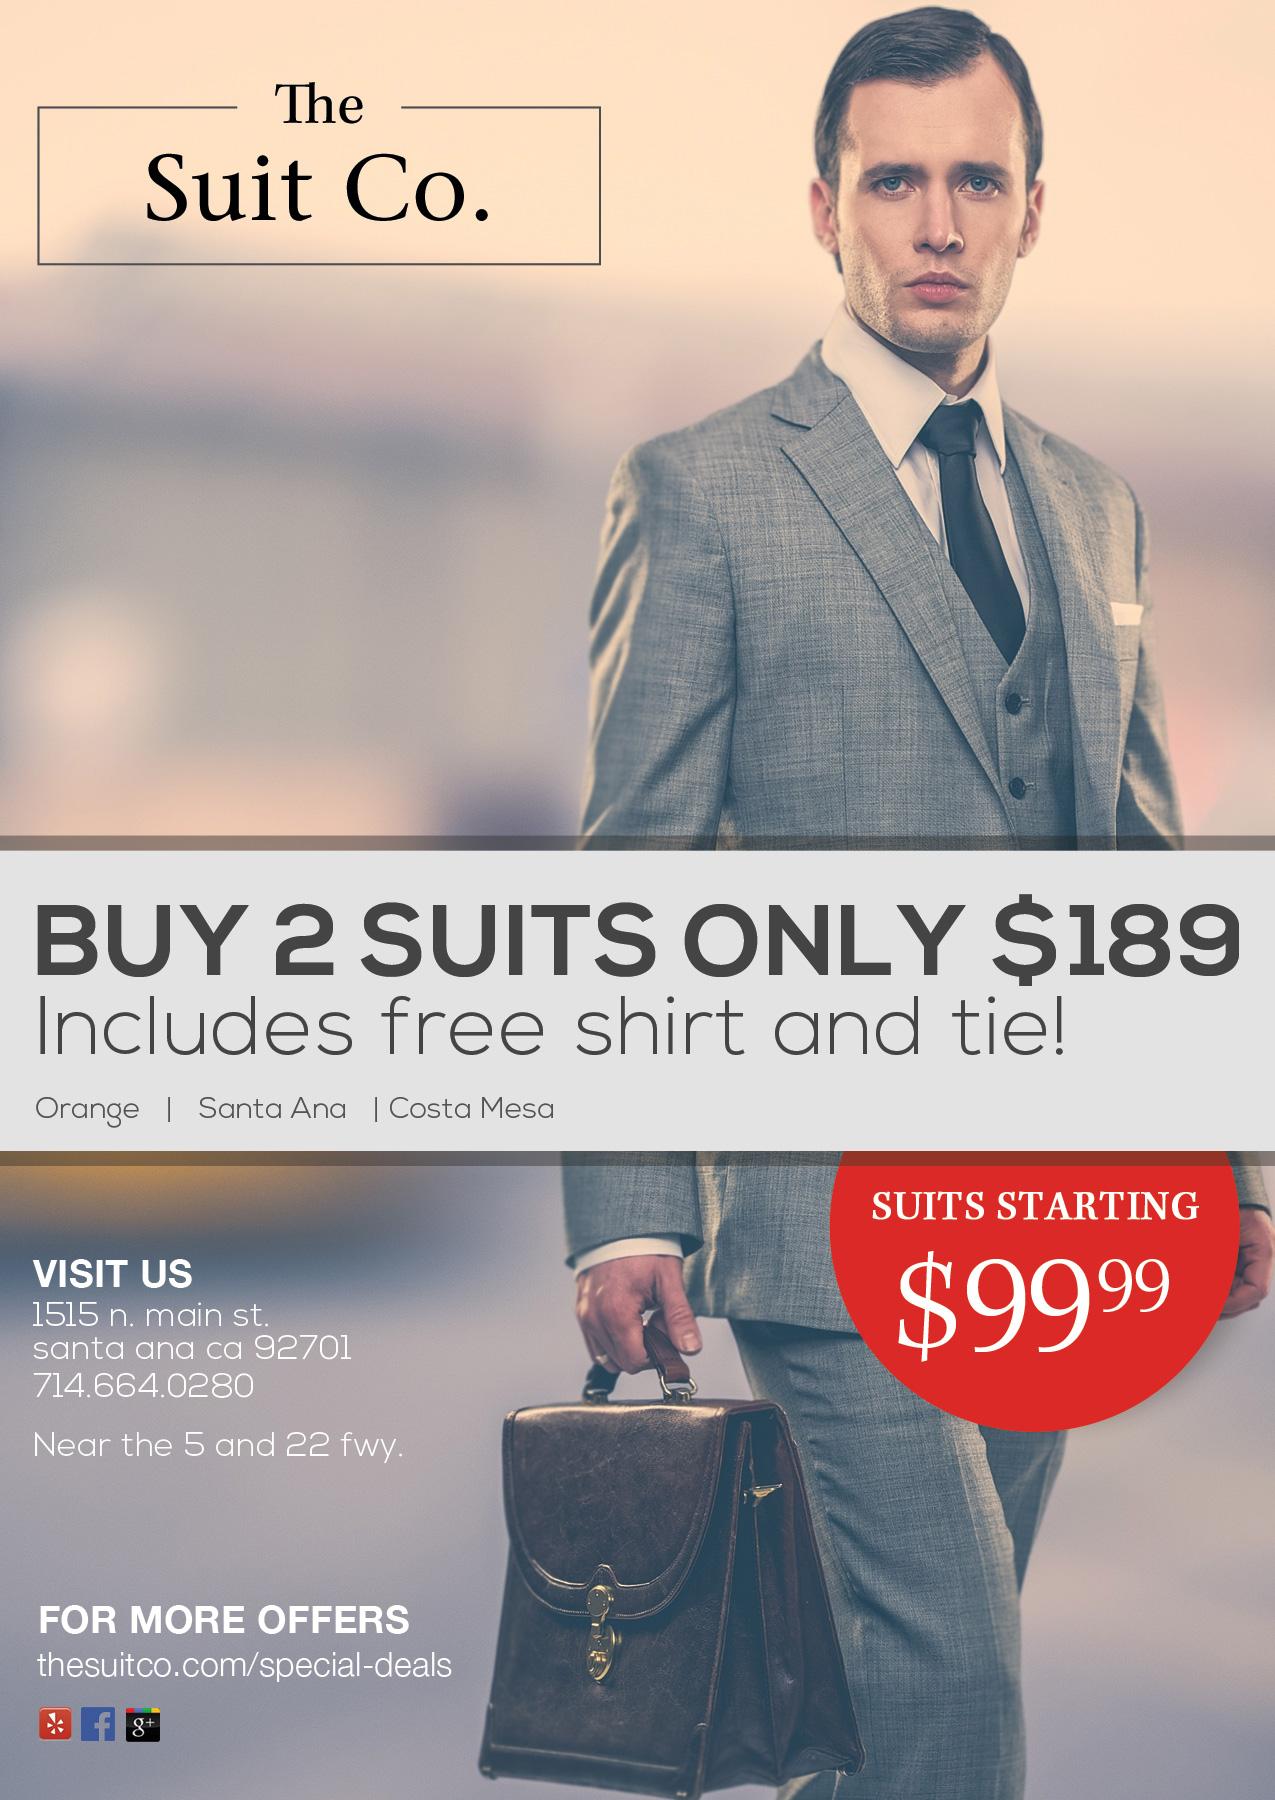 Buy 2 Suits for $189 with Free Shirt & Tie